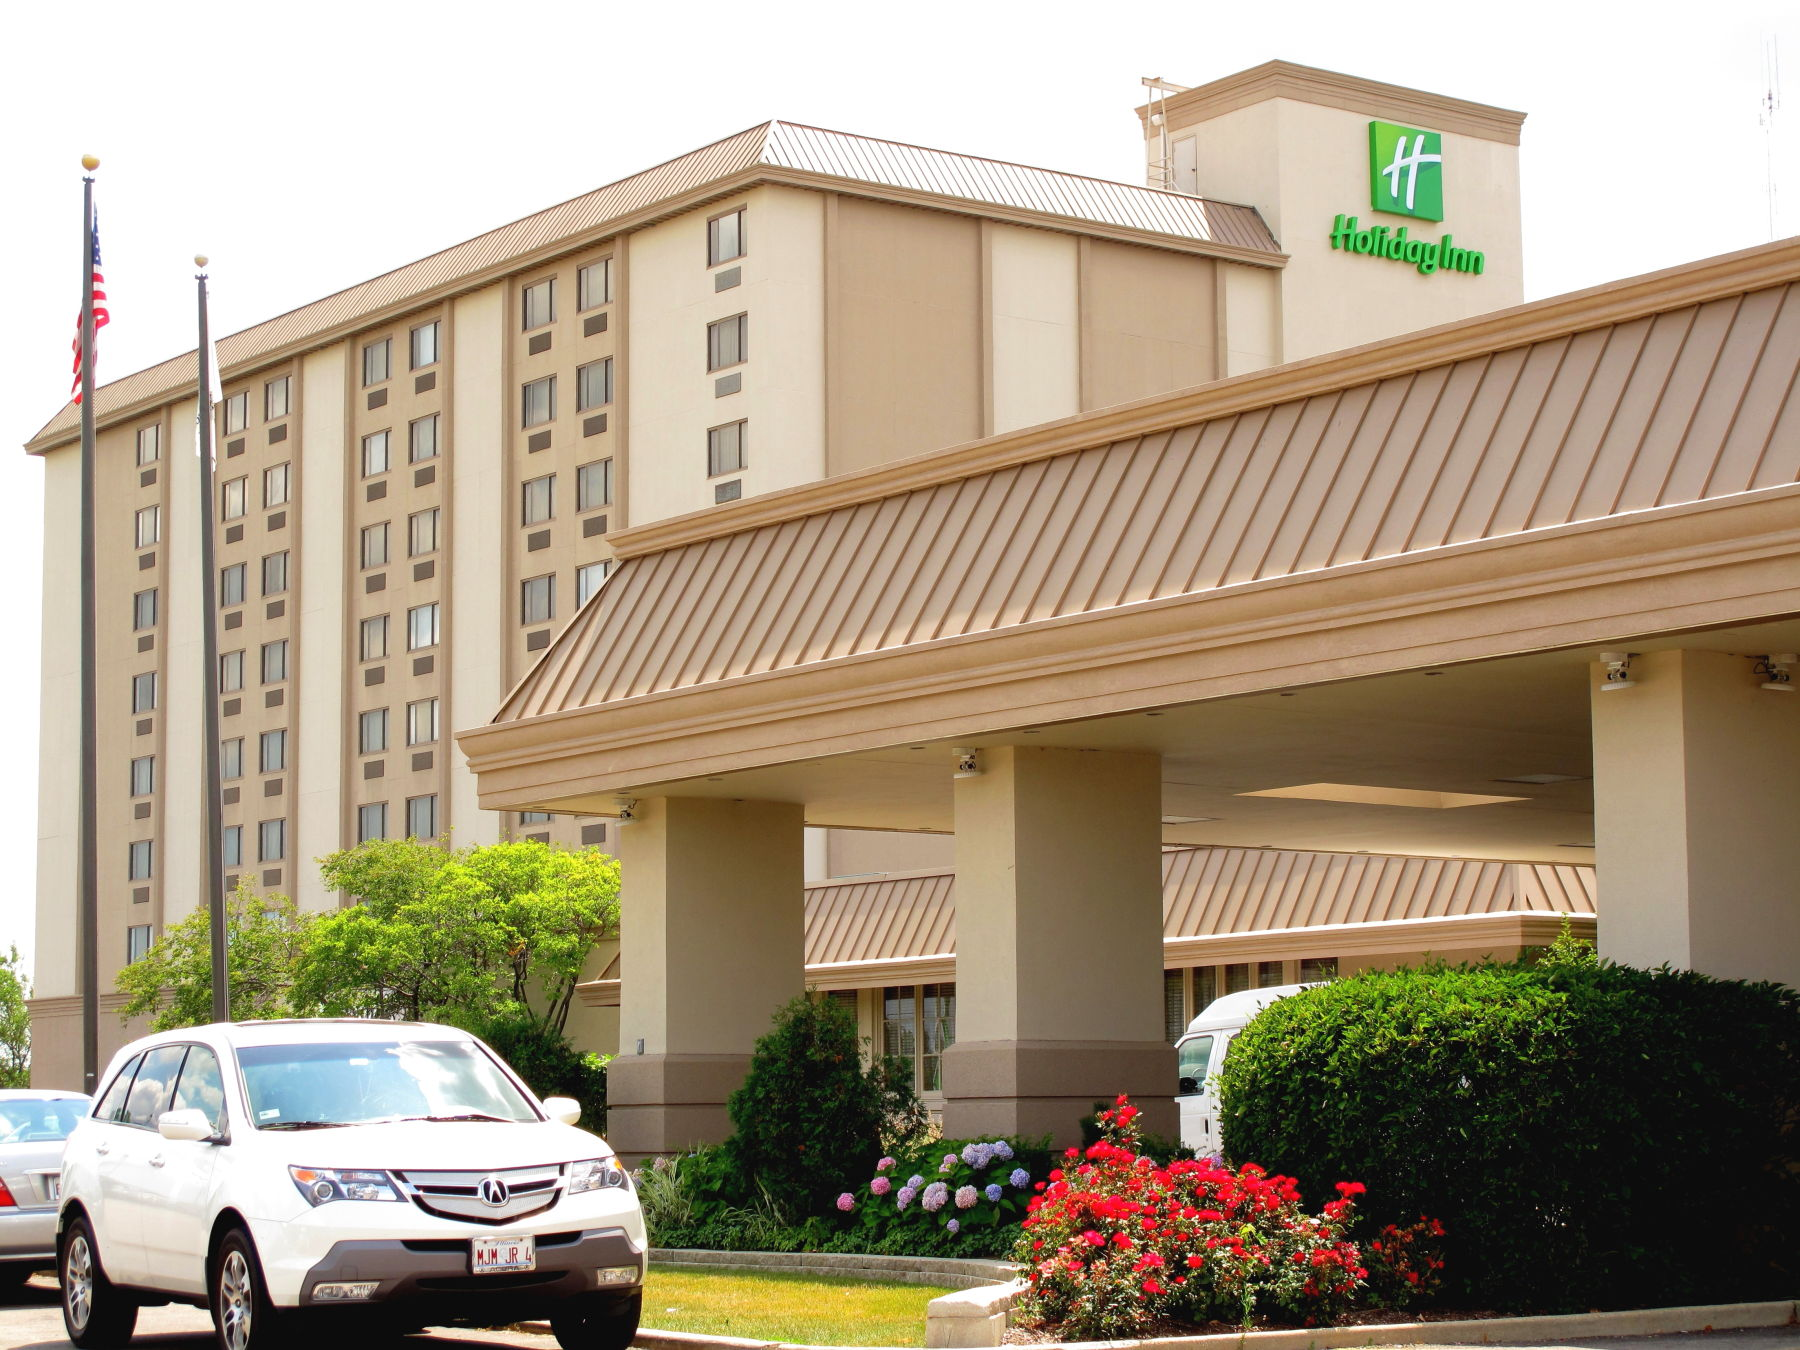 Holiday Inn Chicago Rolling Meadows